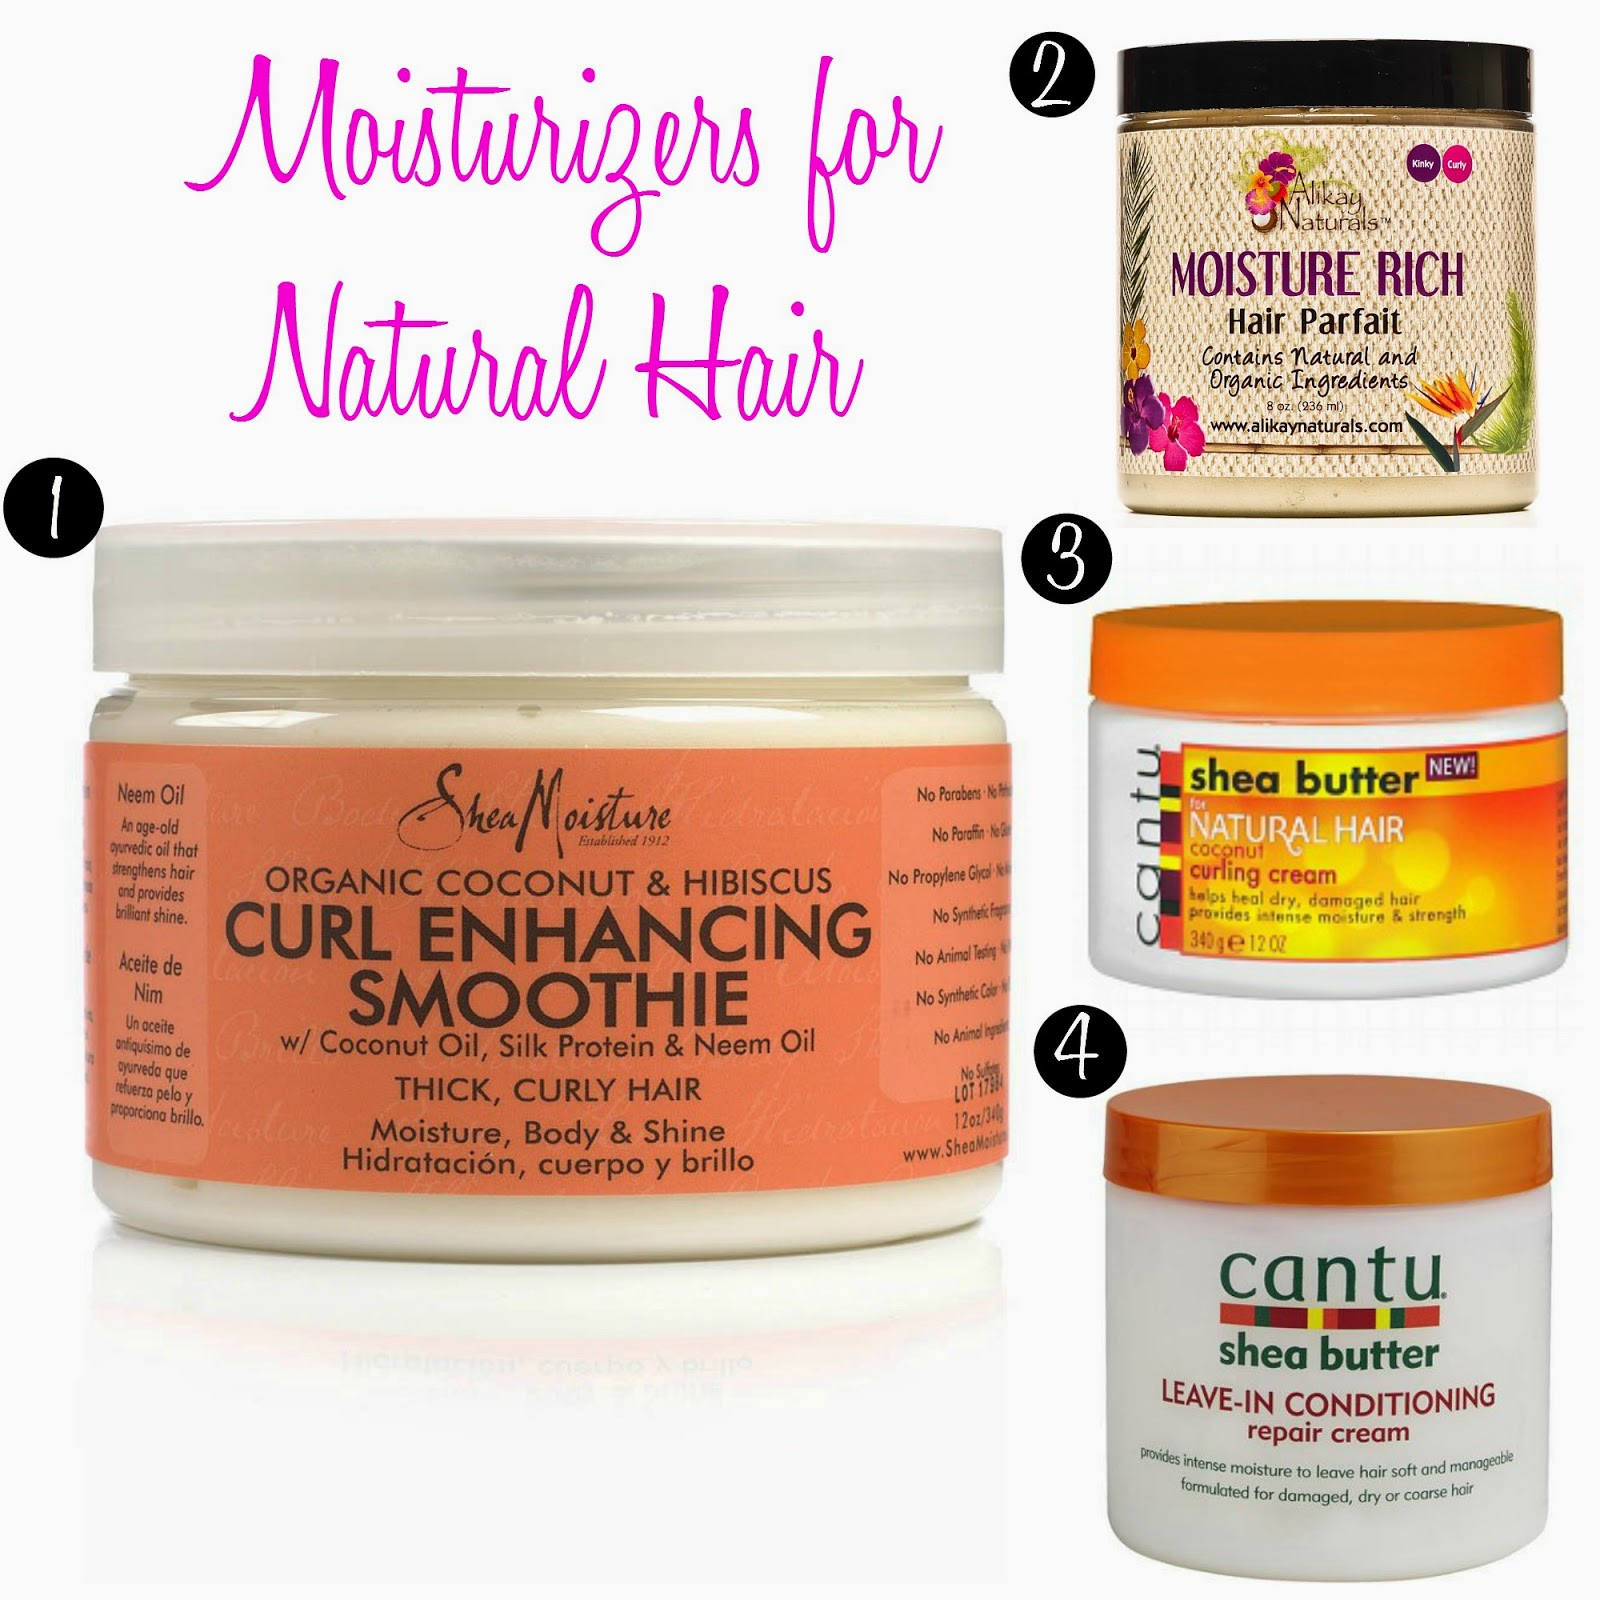 Moisturizers for Natural Hair